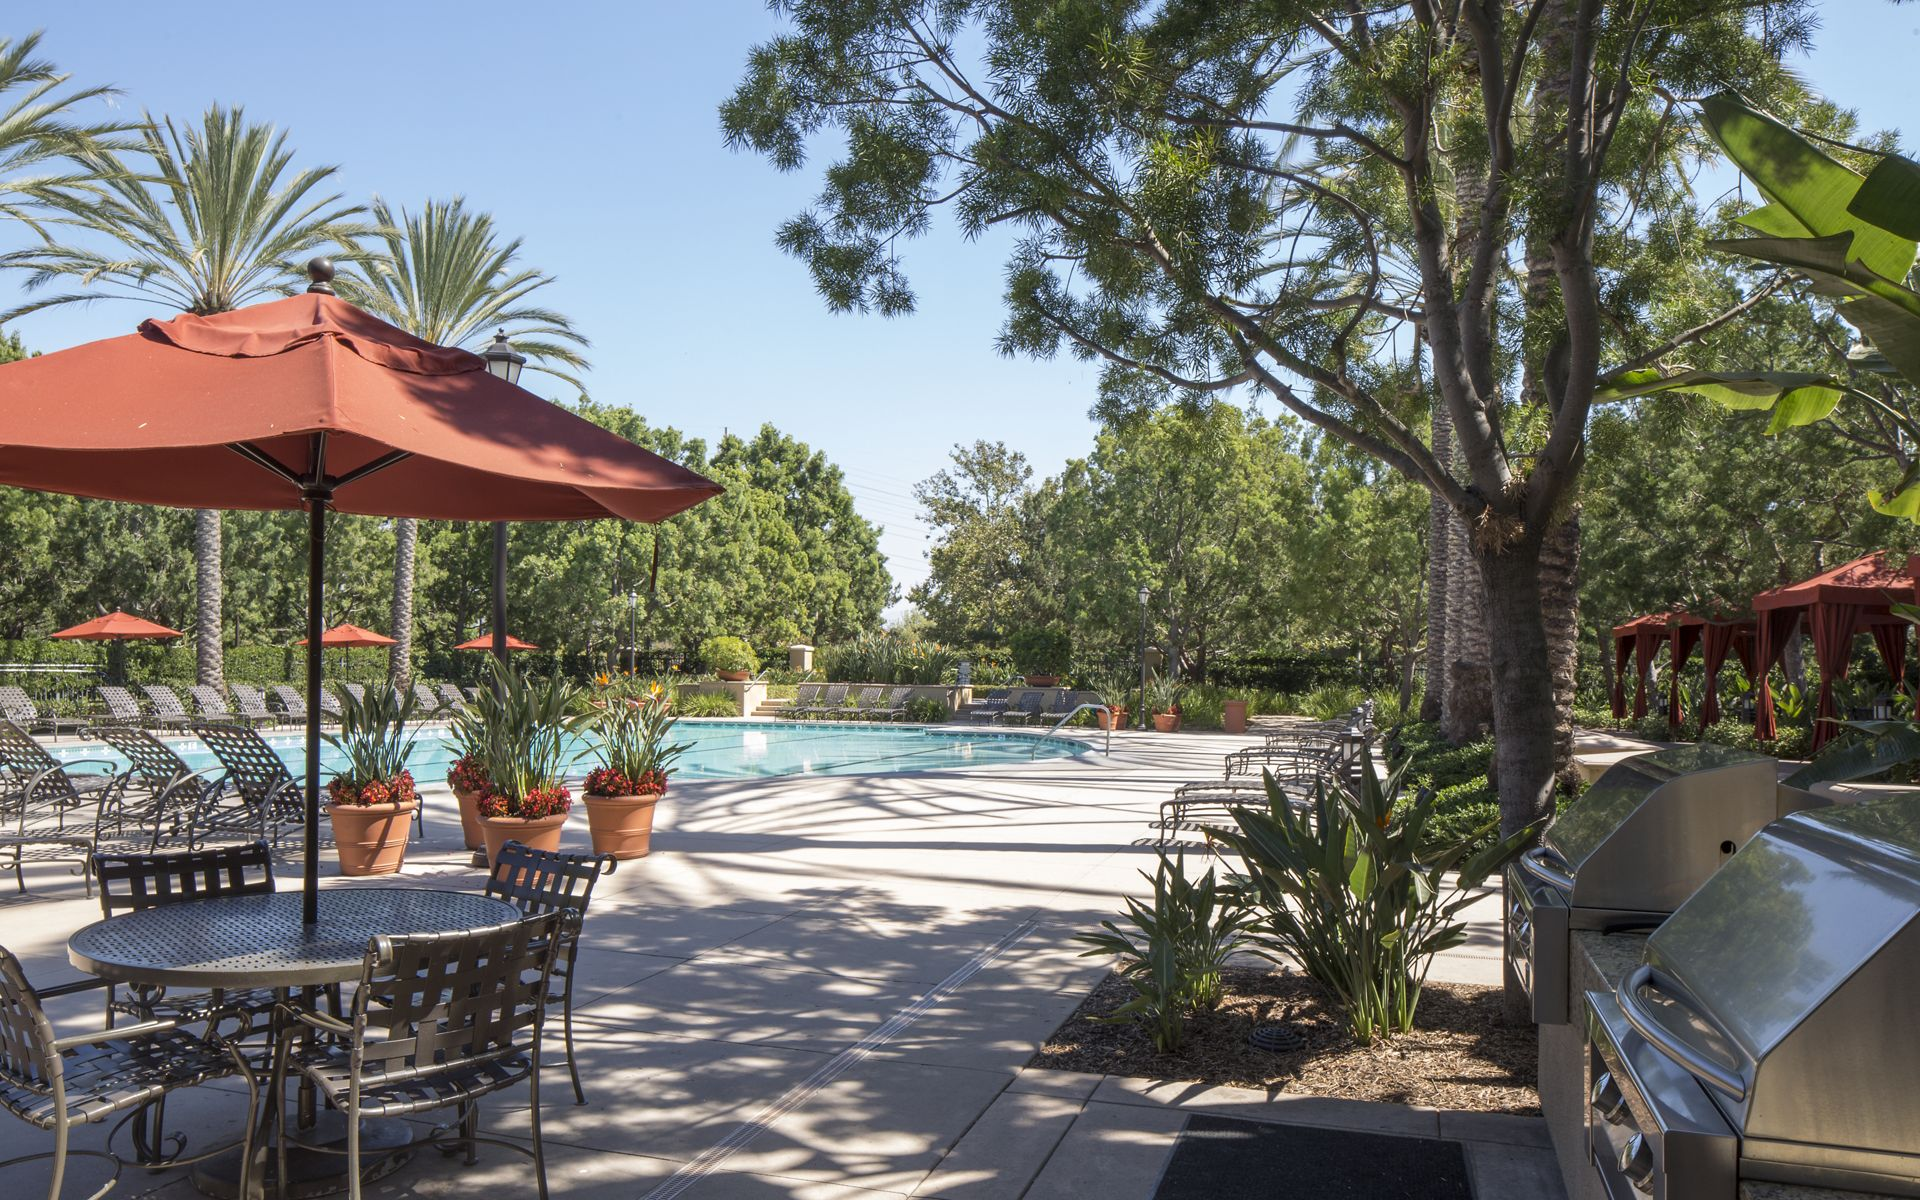 Pool view at Shadow Oaks Apartment Homes in Irvine, CA.